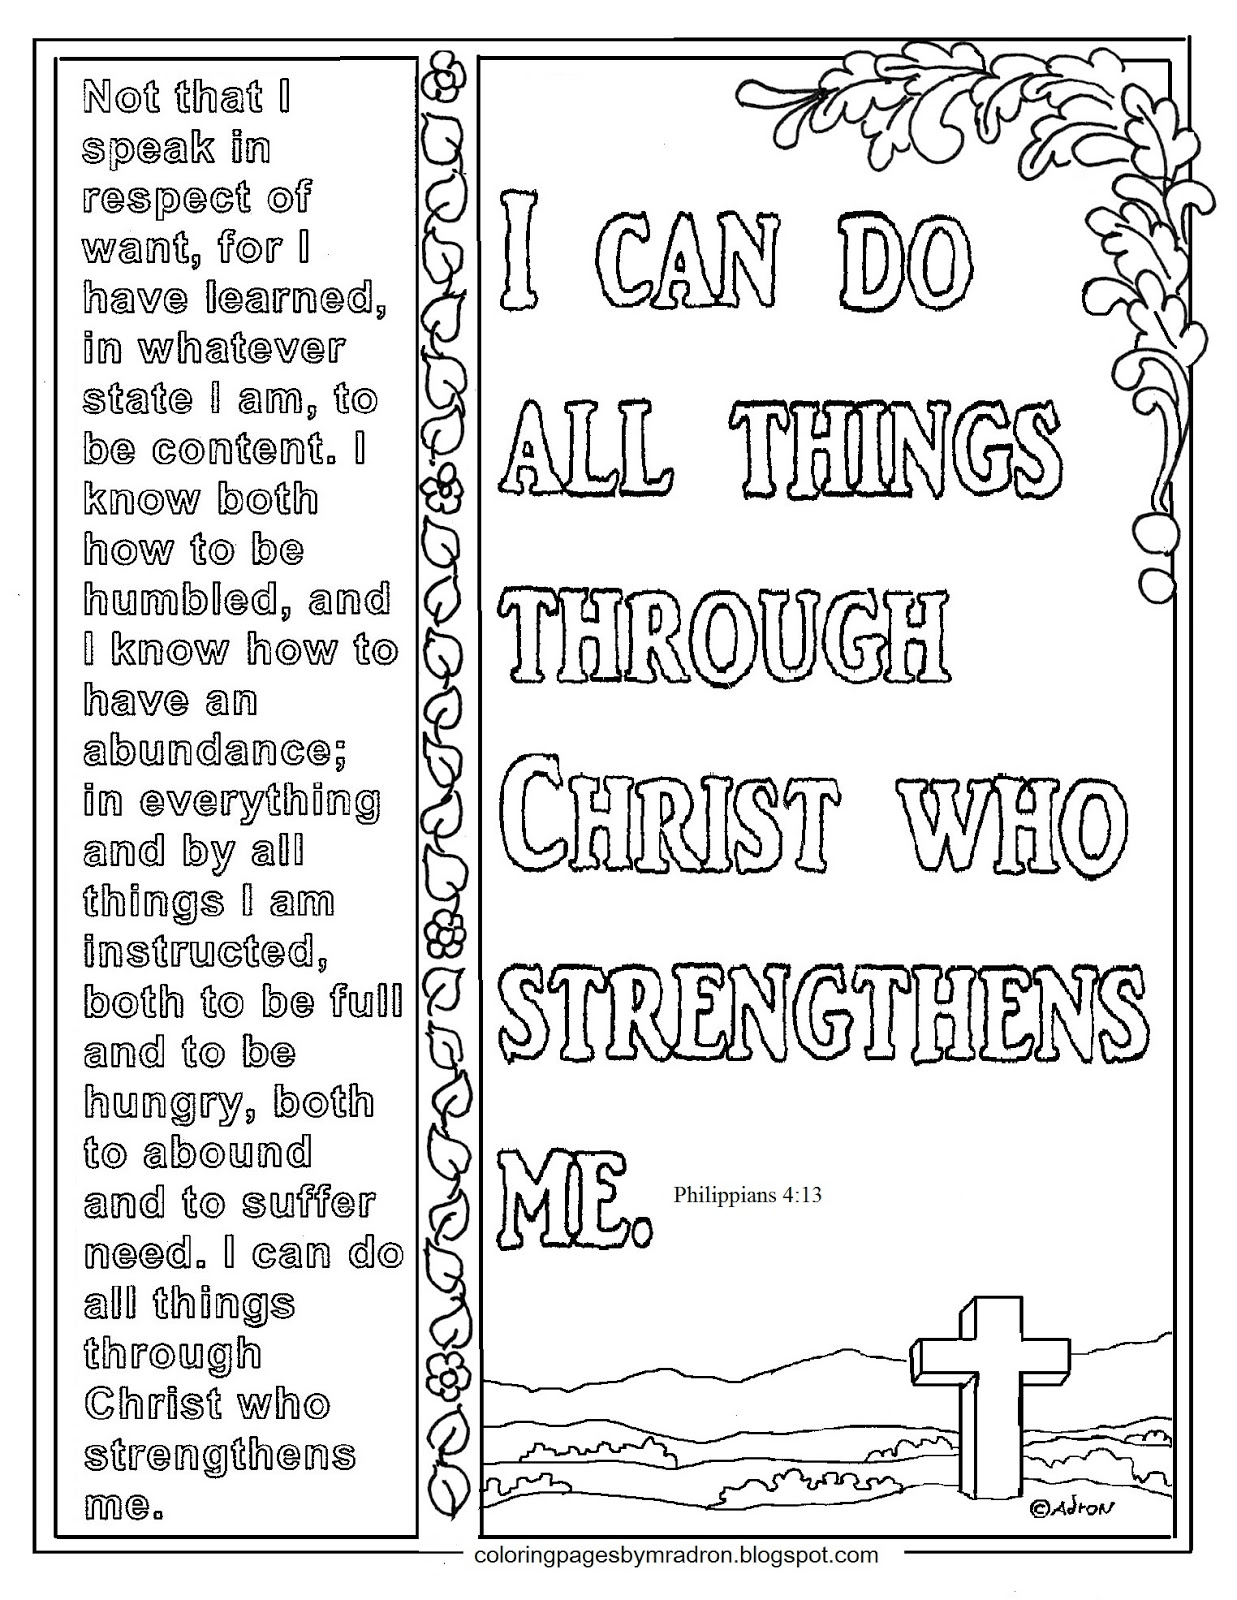 Coloring Pages for Kids by Mr. Adron: Philippians 4:13 ...